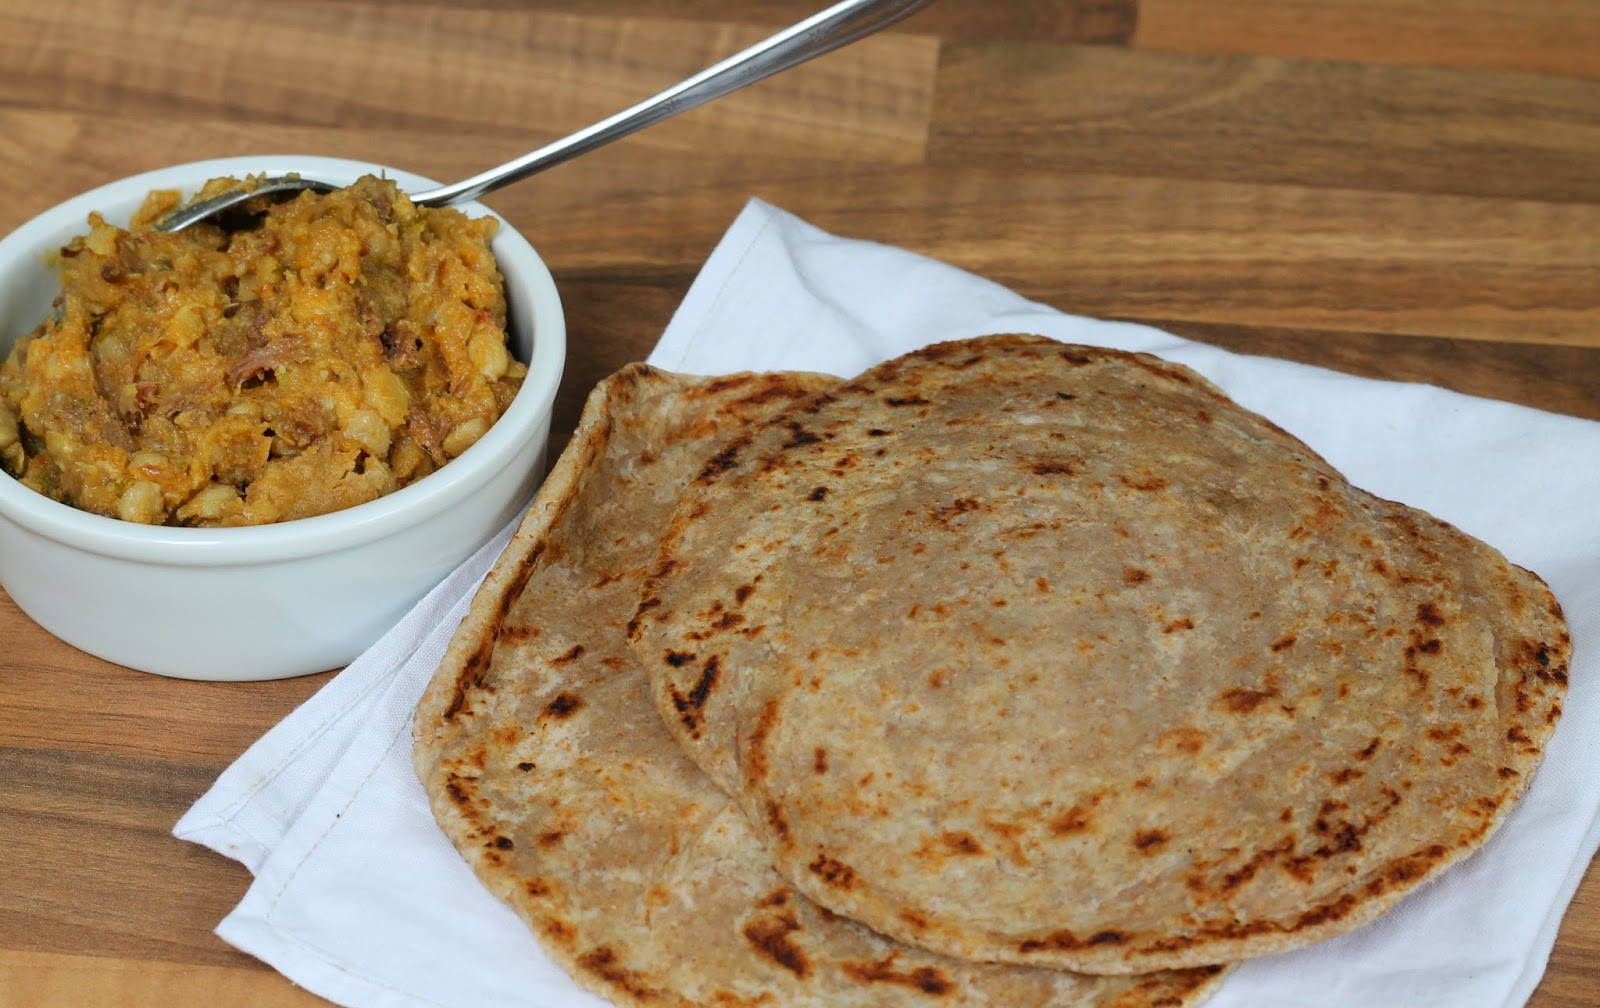 Parathas with a bowl of daal